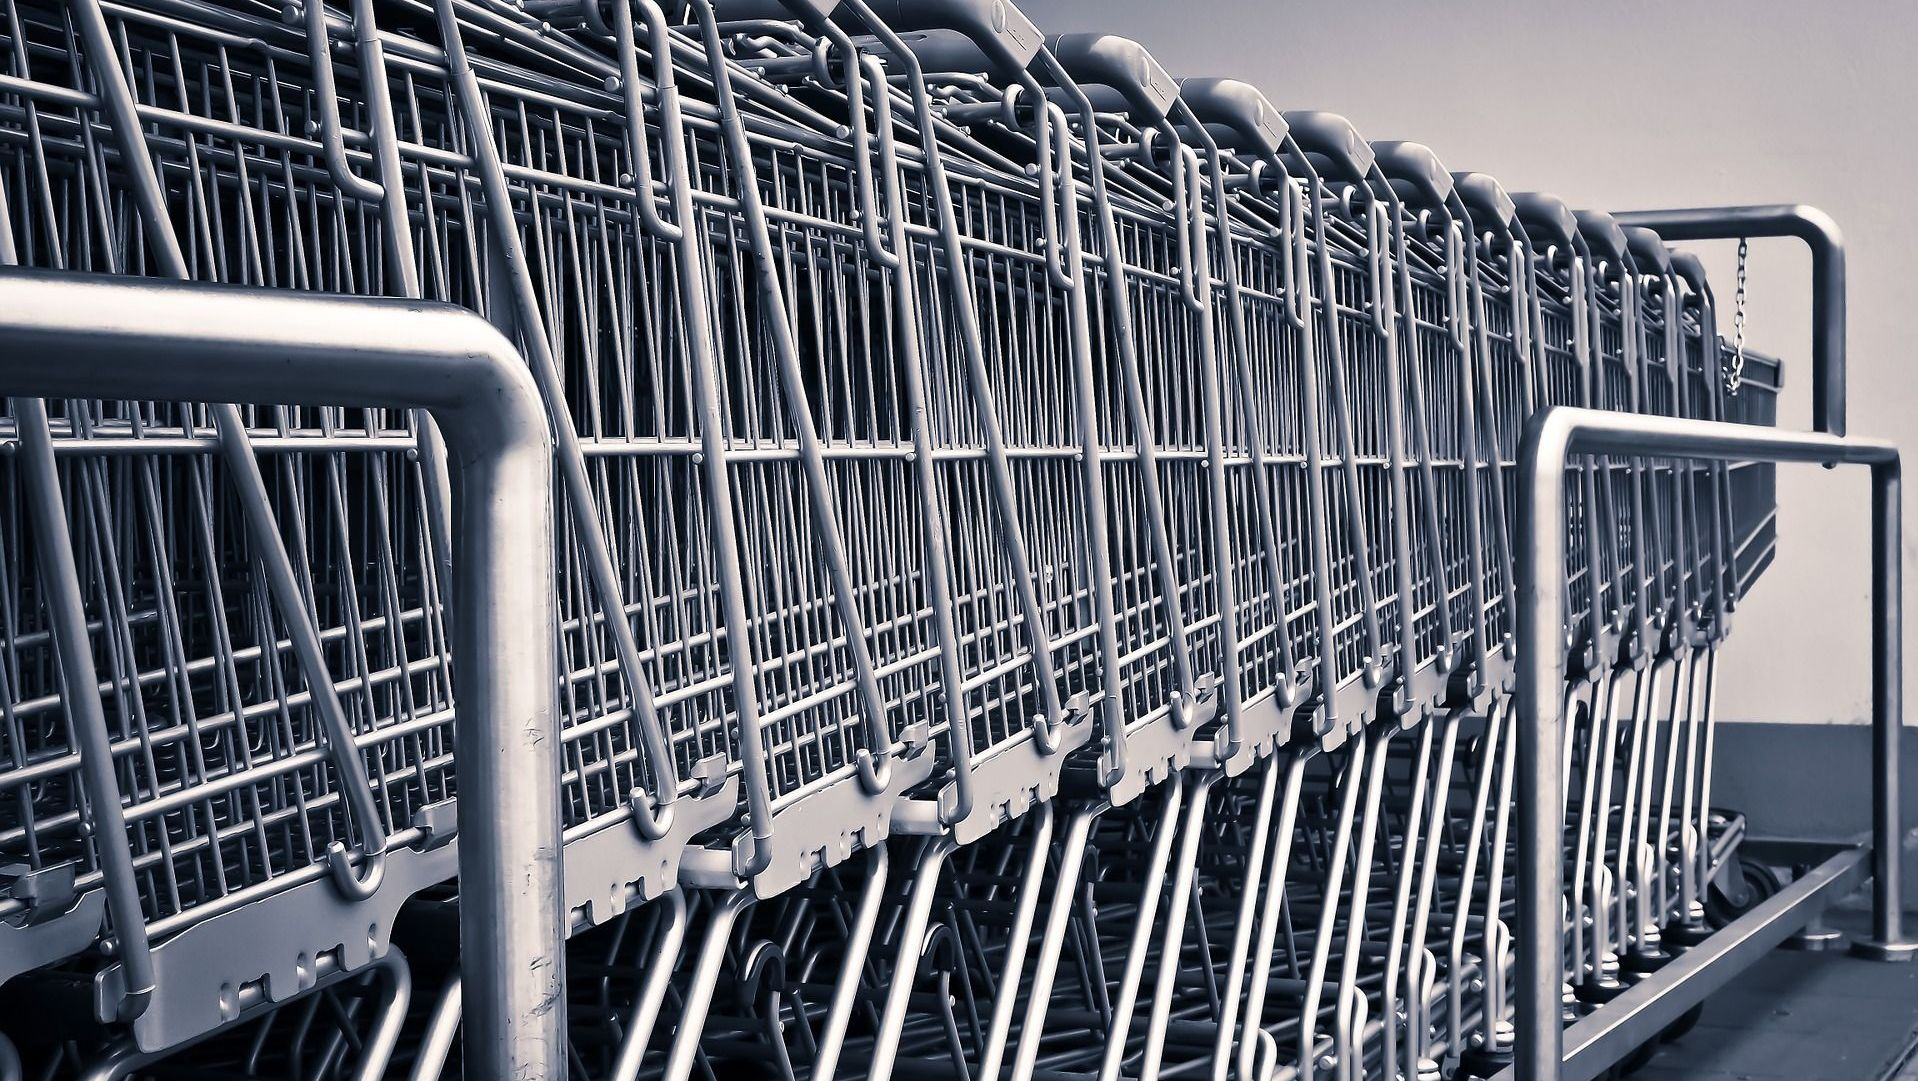 shopping-cart-1275480_19201